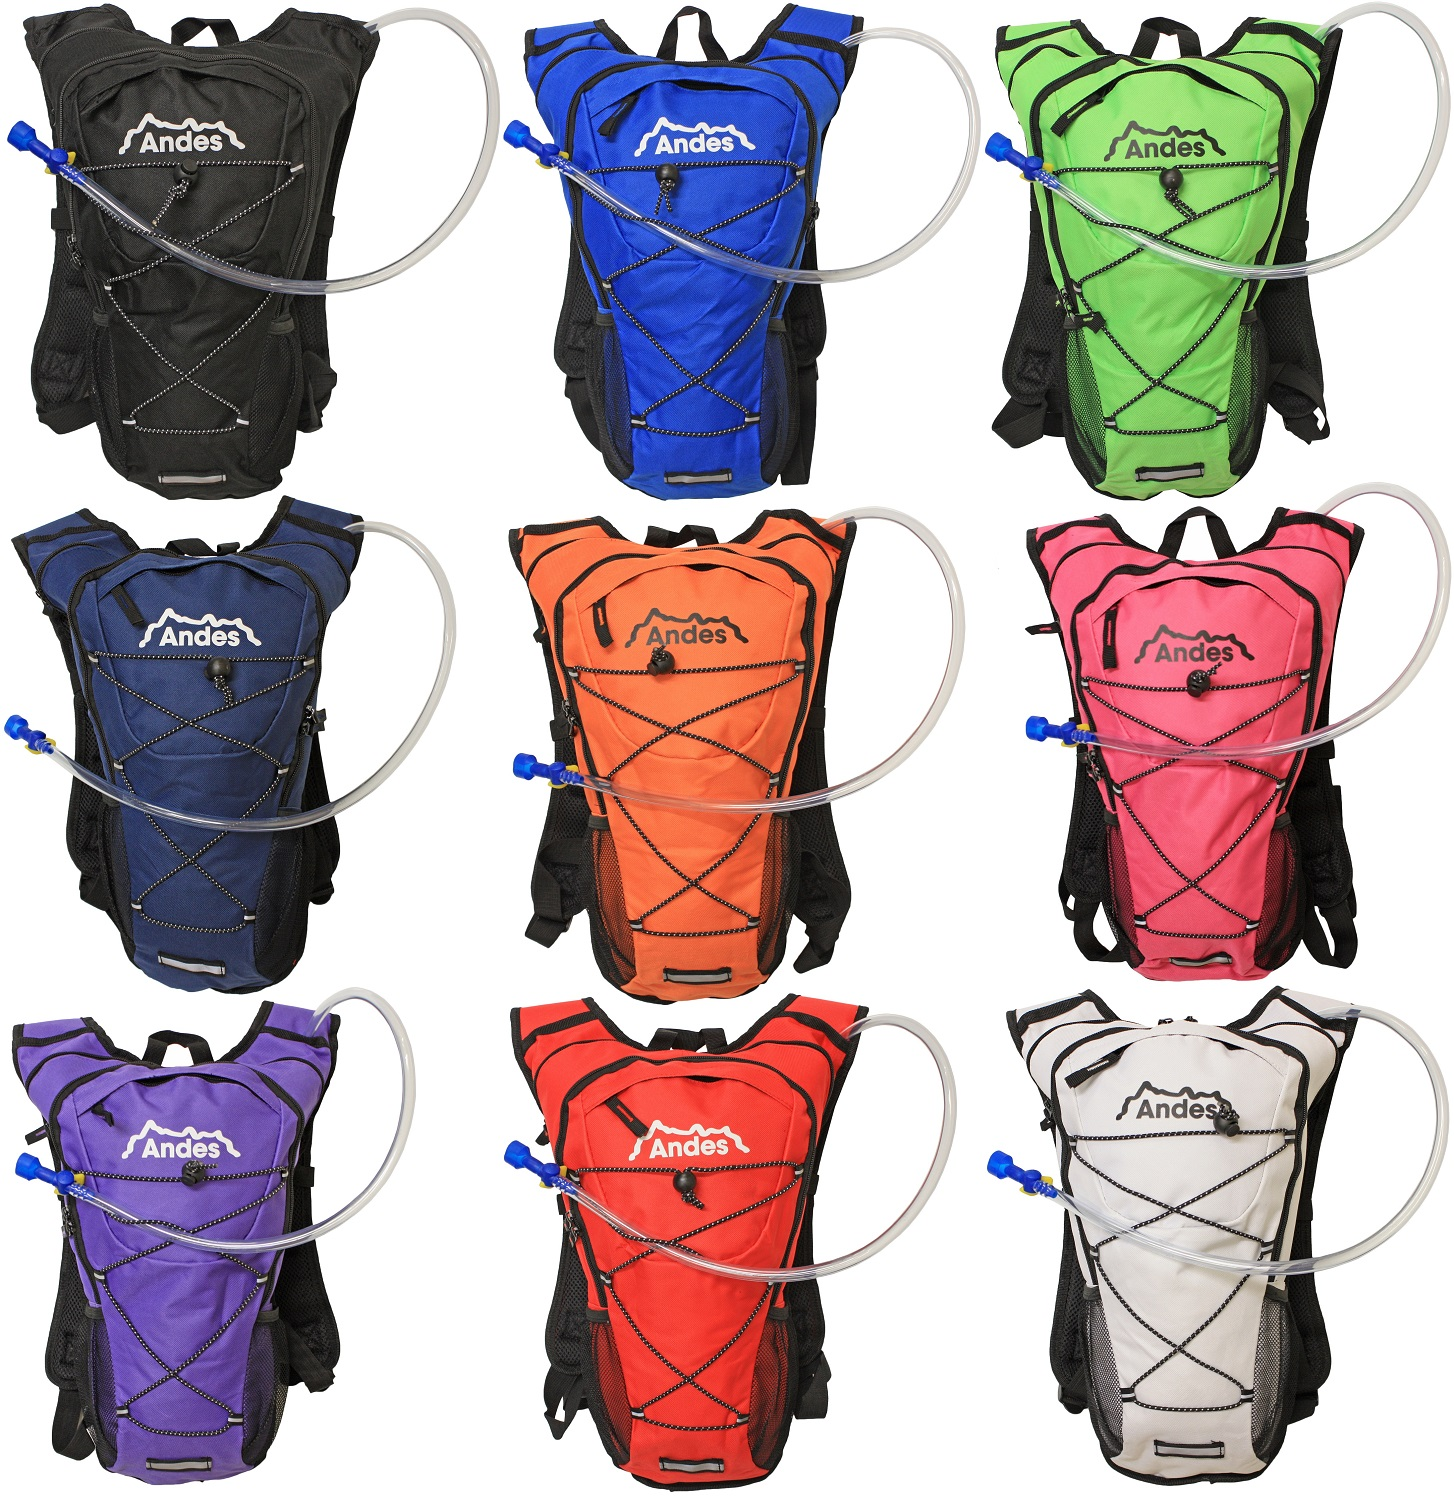 Andes 2 Litre Hydration Pack/Backpack Bag With Water Bladder For ...